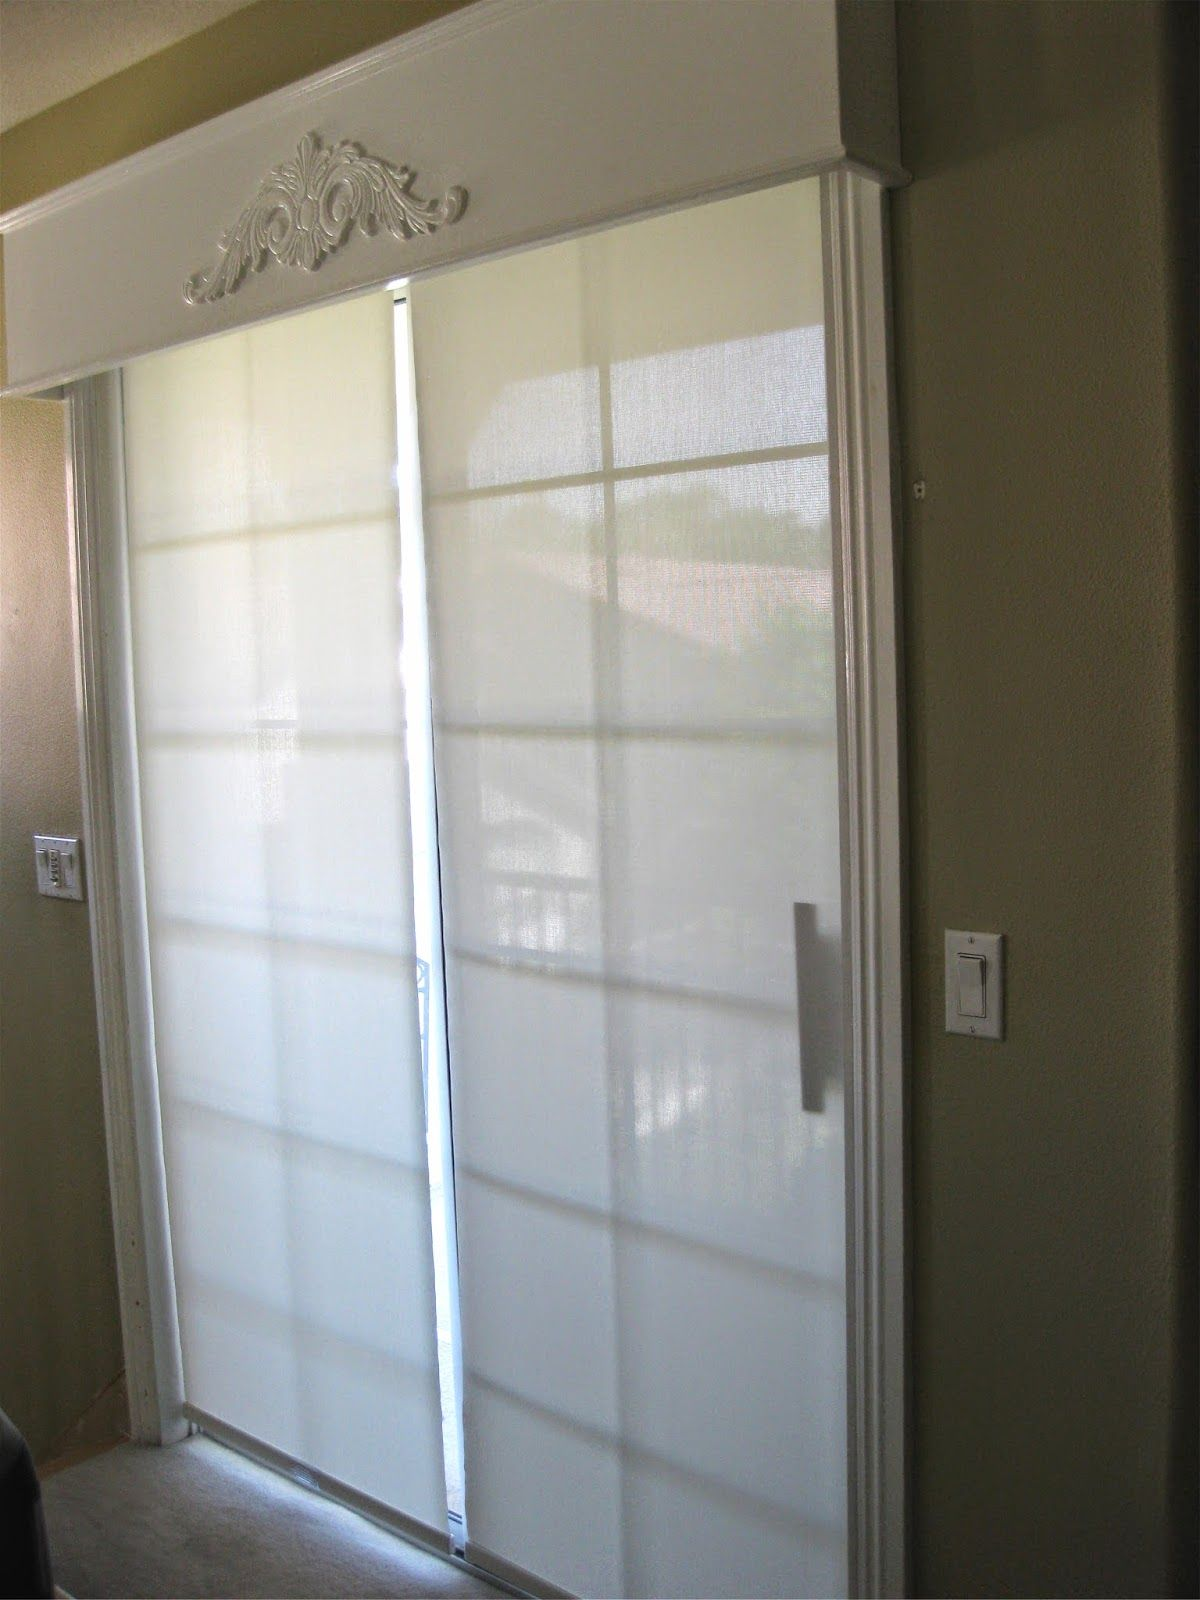 Cornice Box for Sliding Glass Door (With images) | Sliding ...